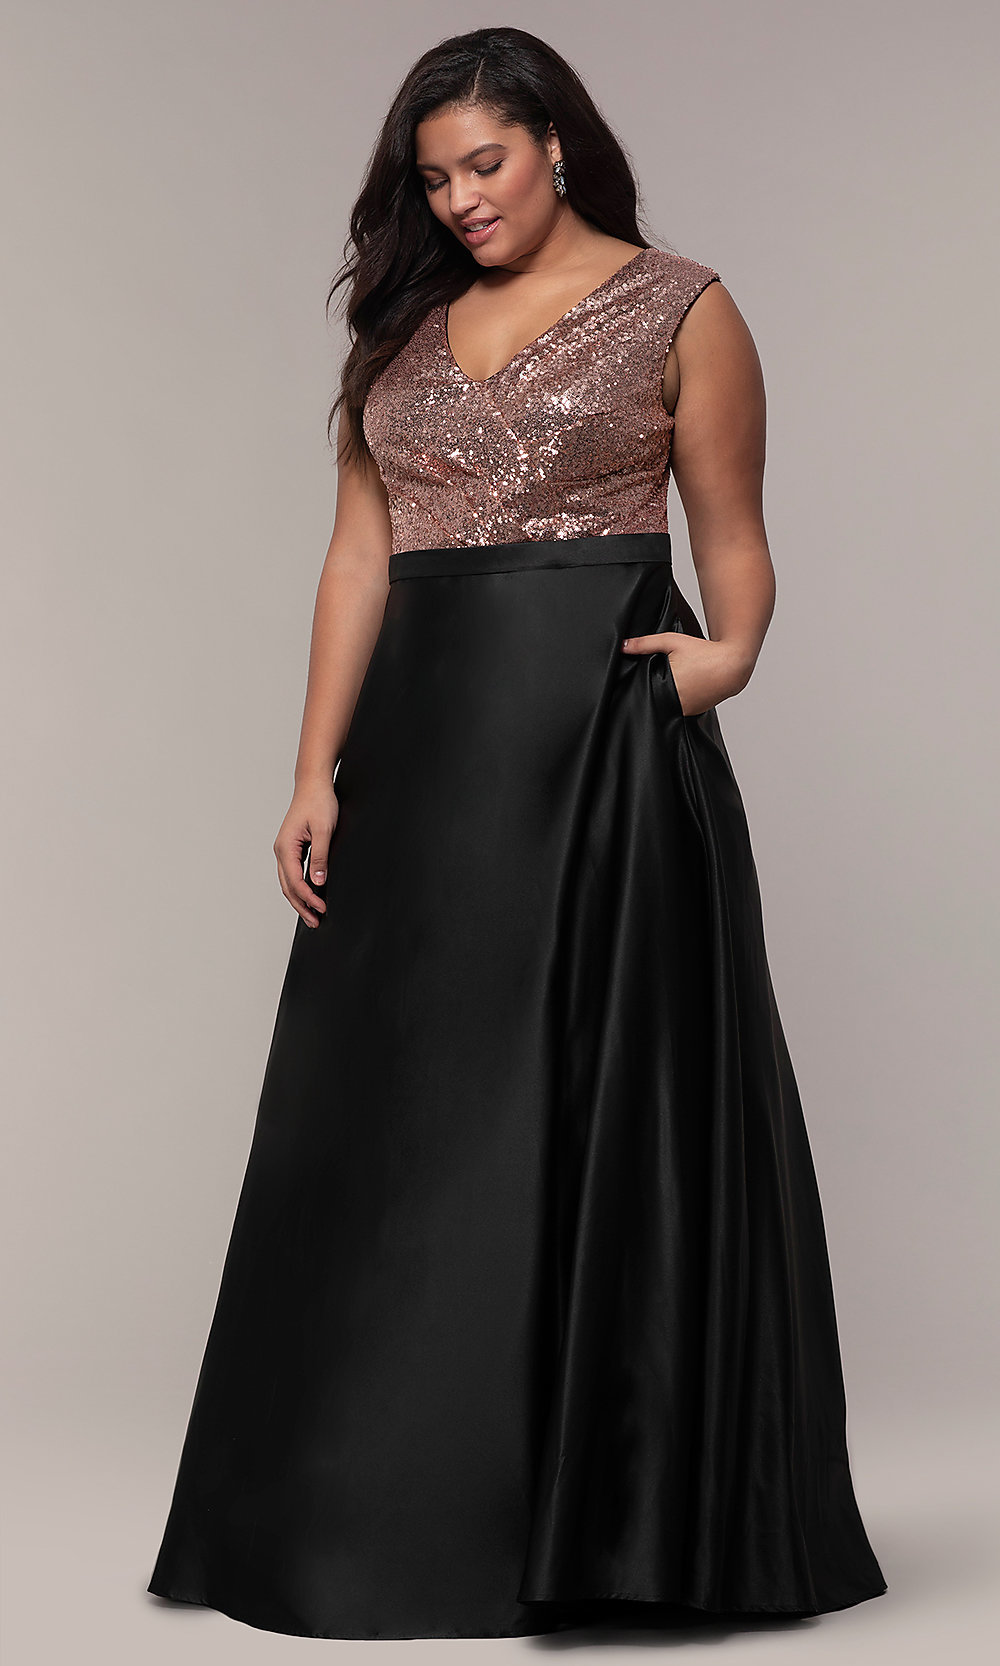 Sequin-Bodice Two-Tone Long Plus-Size Prom Dress